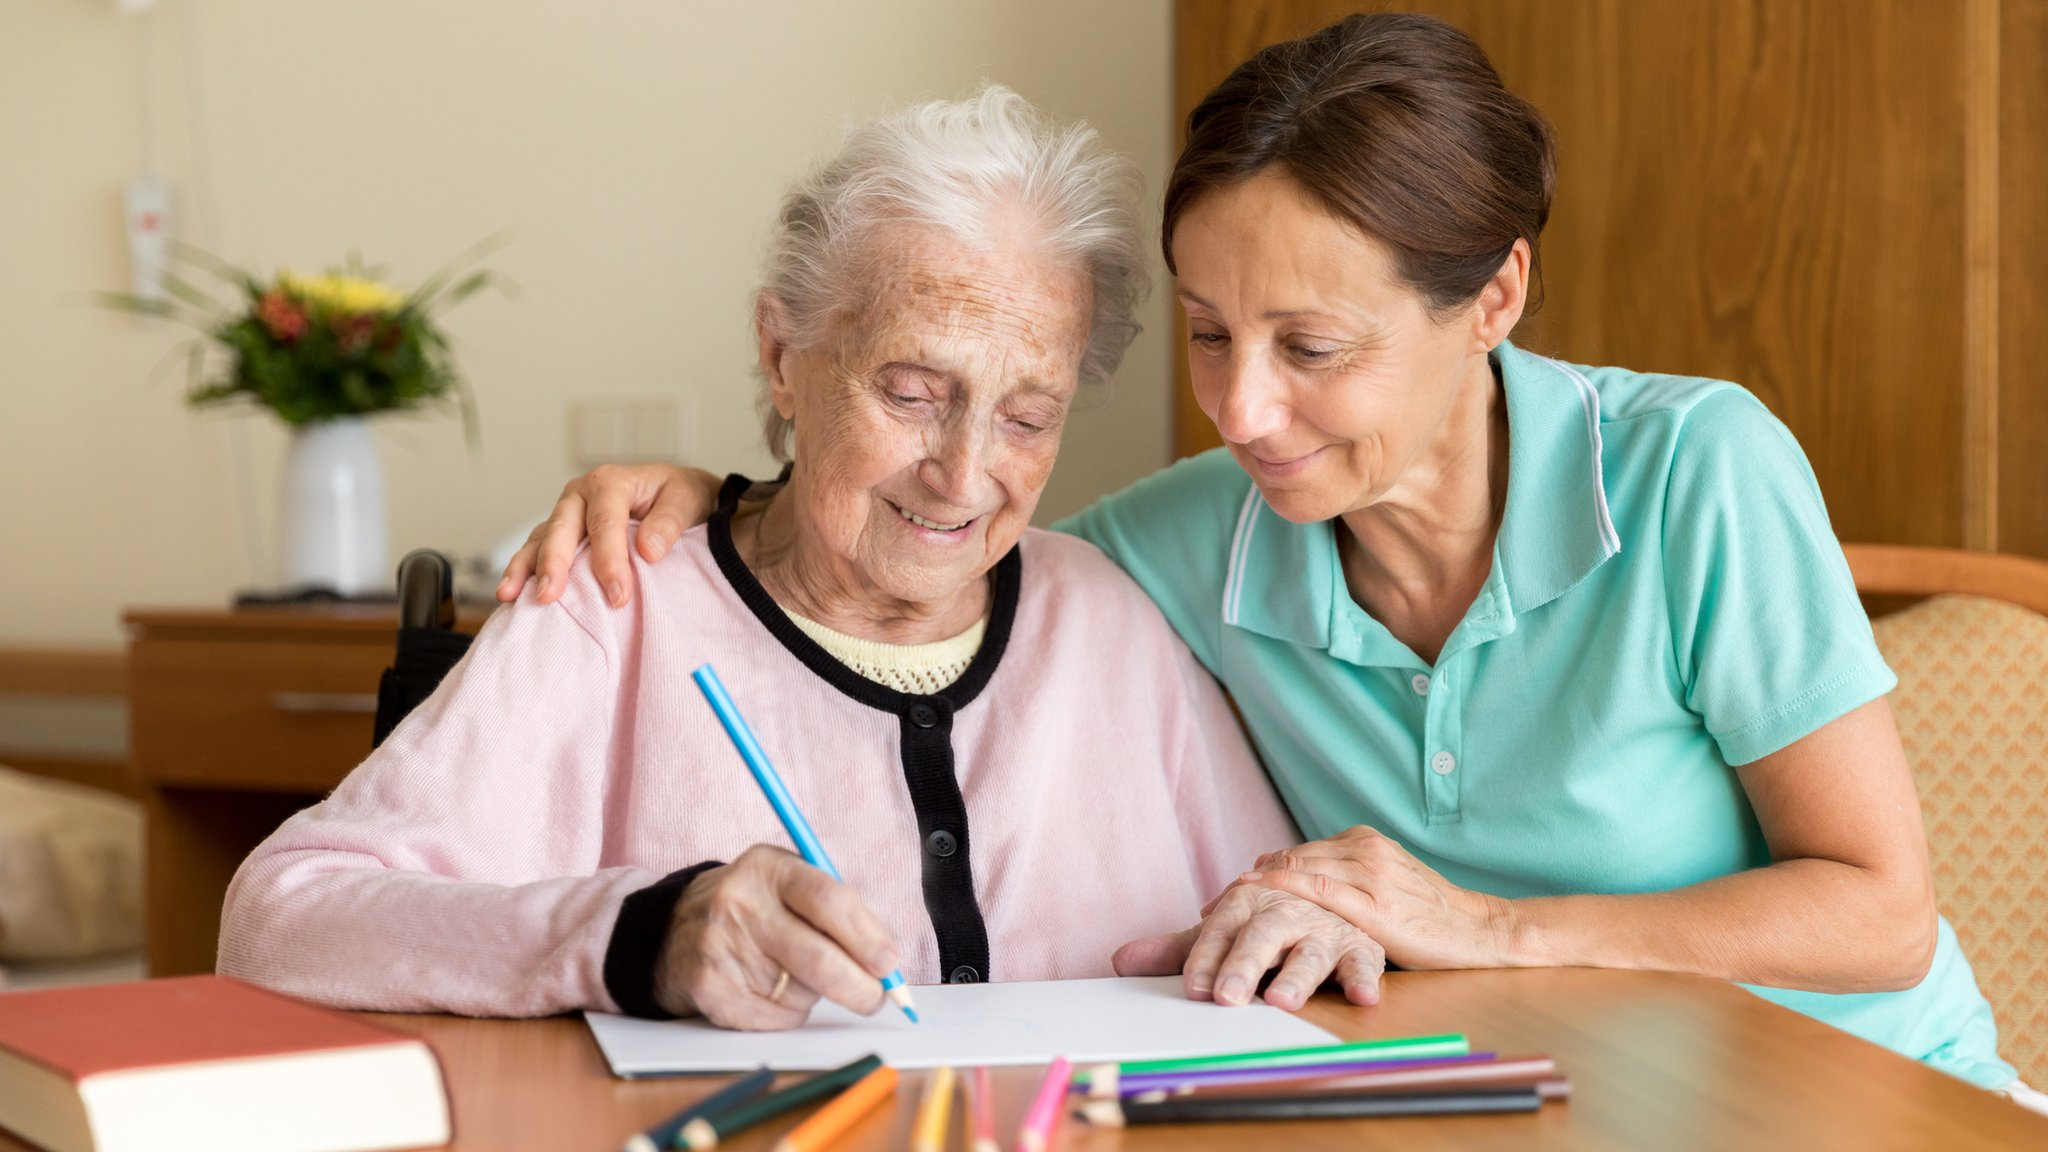 Numbers of elderly in 24-hour care set to double by 2035